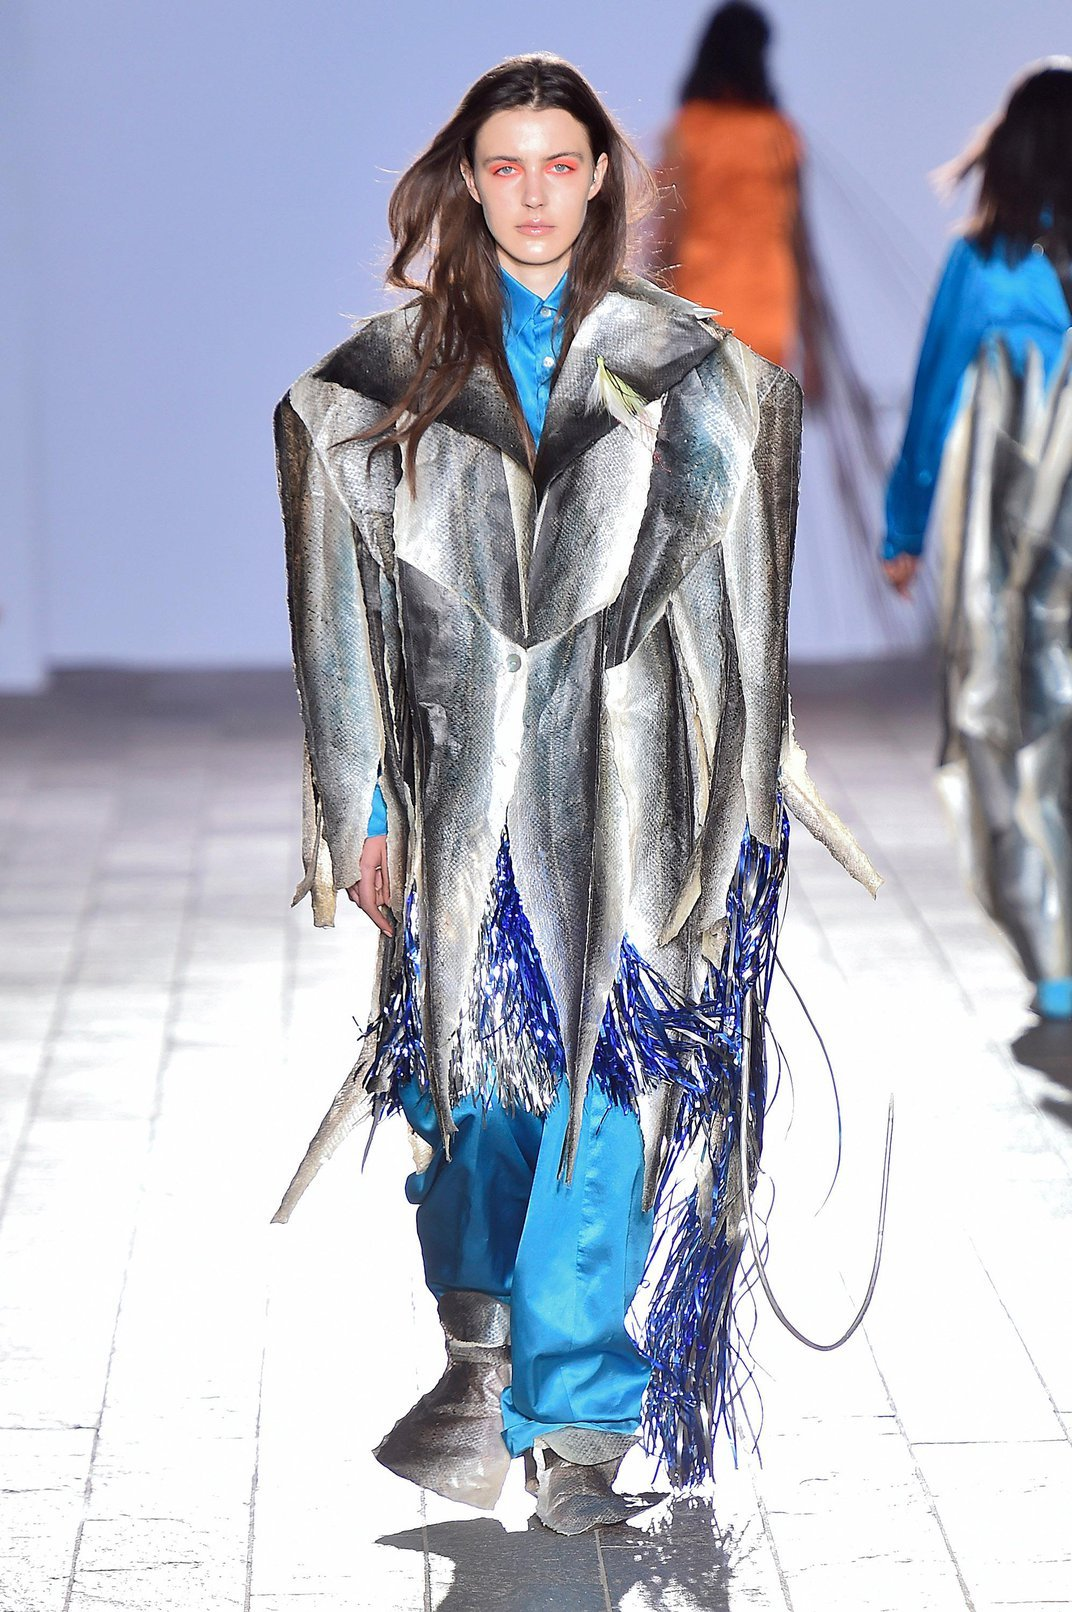 Does Fish Skin Have a Future in Fashion?